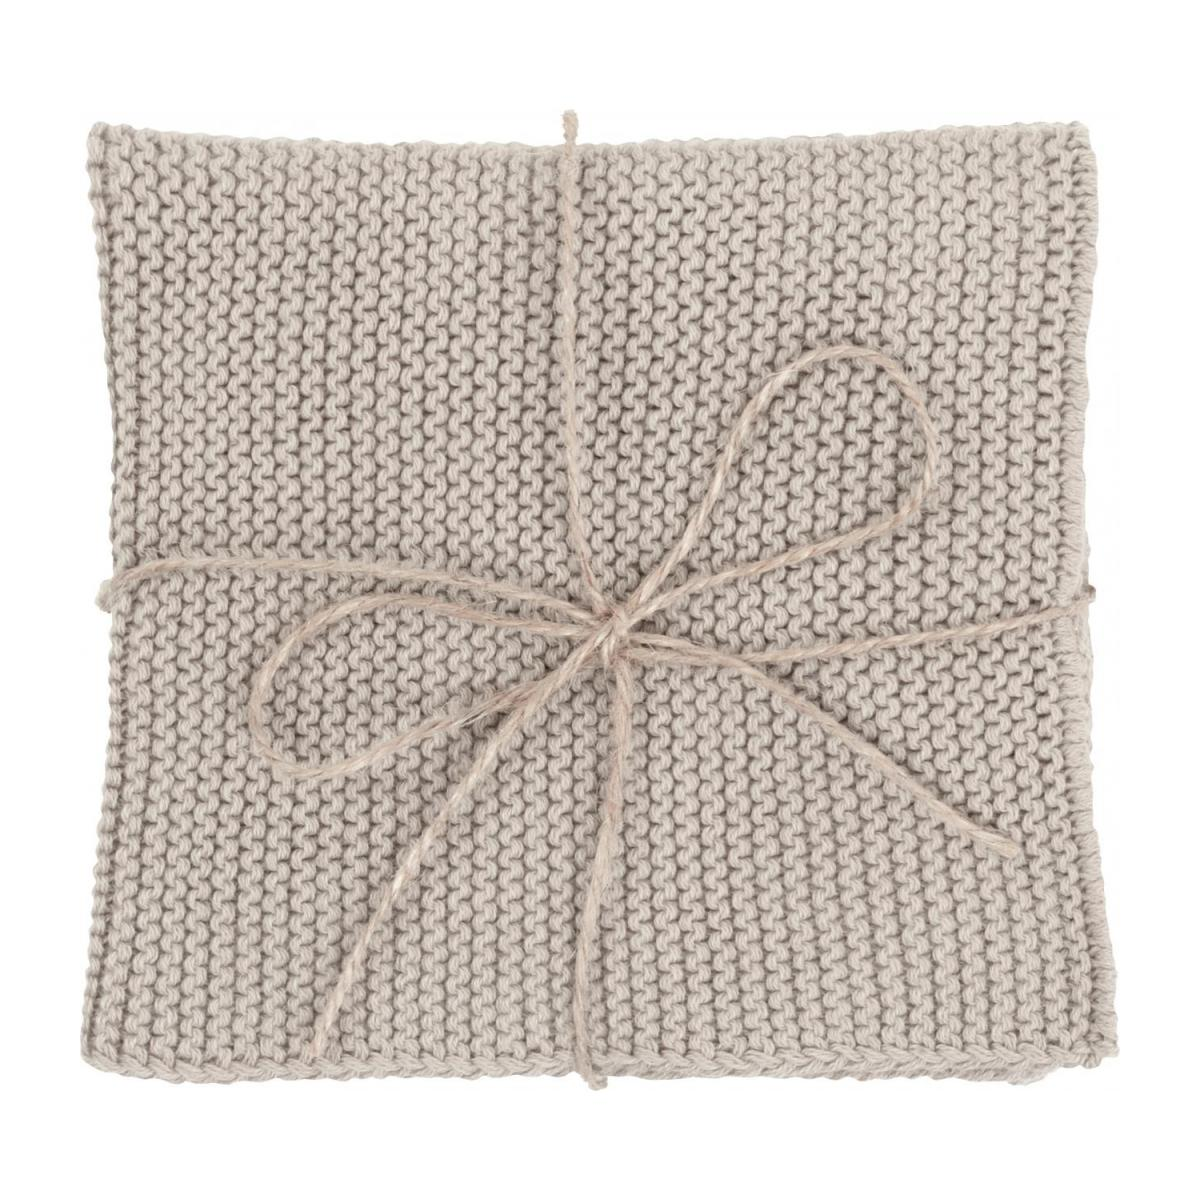 Lot de 2 serviettes de table en coton - 25 x 25 cm - Beige n°4